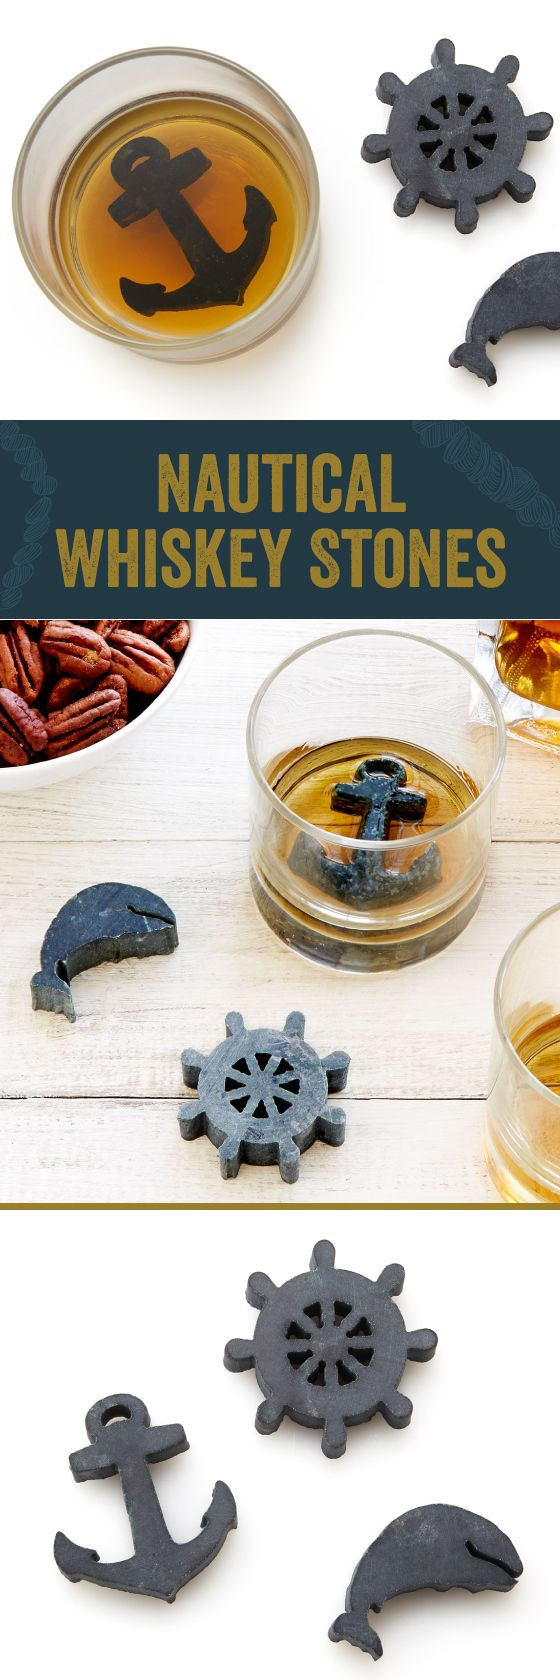 """$14.95 - Nautical-themed whiskey stones offer an alternative to ice """"rocks"""" that can sink your drink by diluting the perfect dram."""